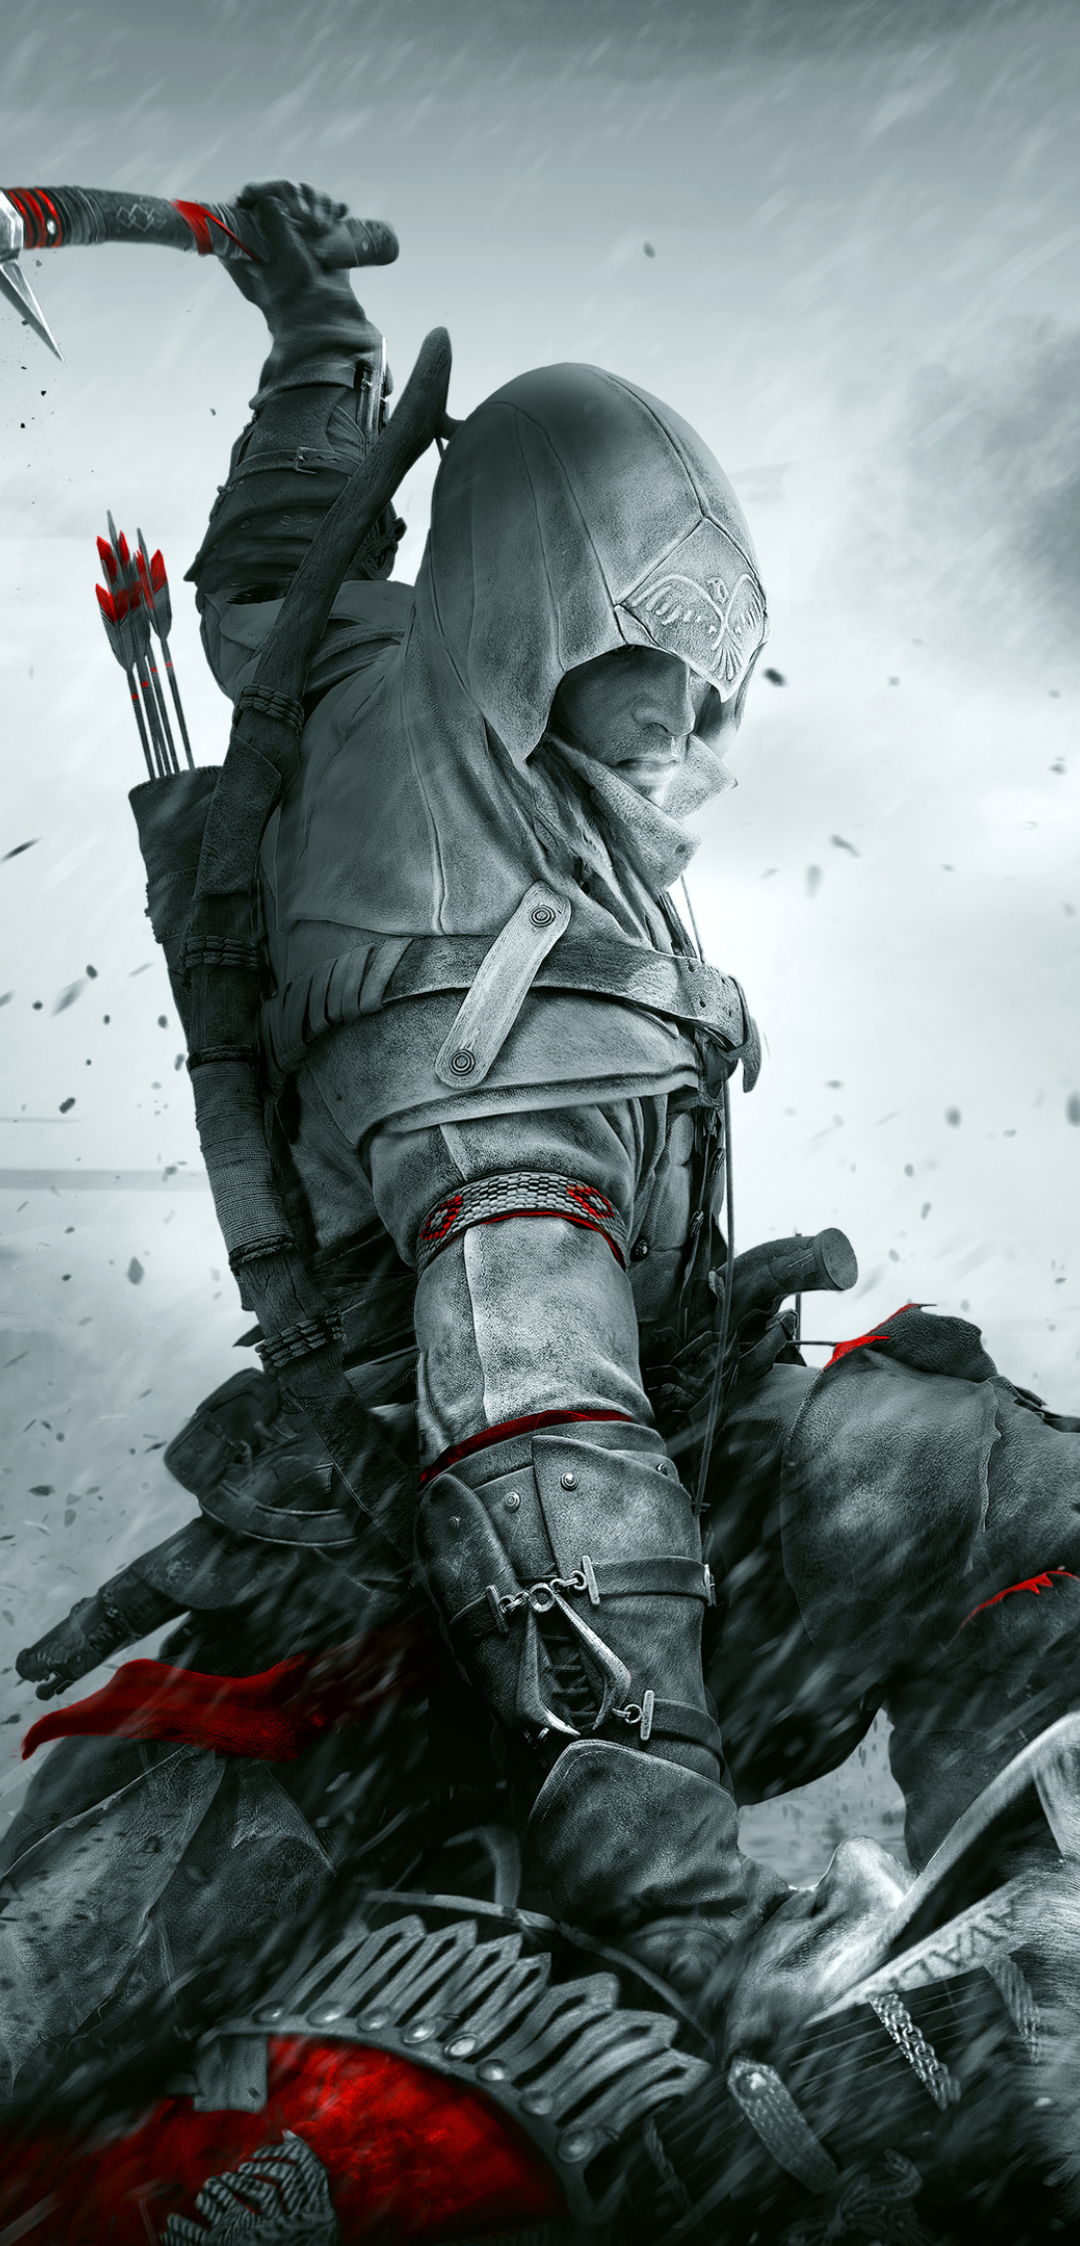 1080x2246 Assassin S Creed 3 4k 1080x2246 Resolution Wallpaper Hd